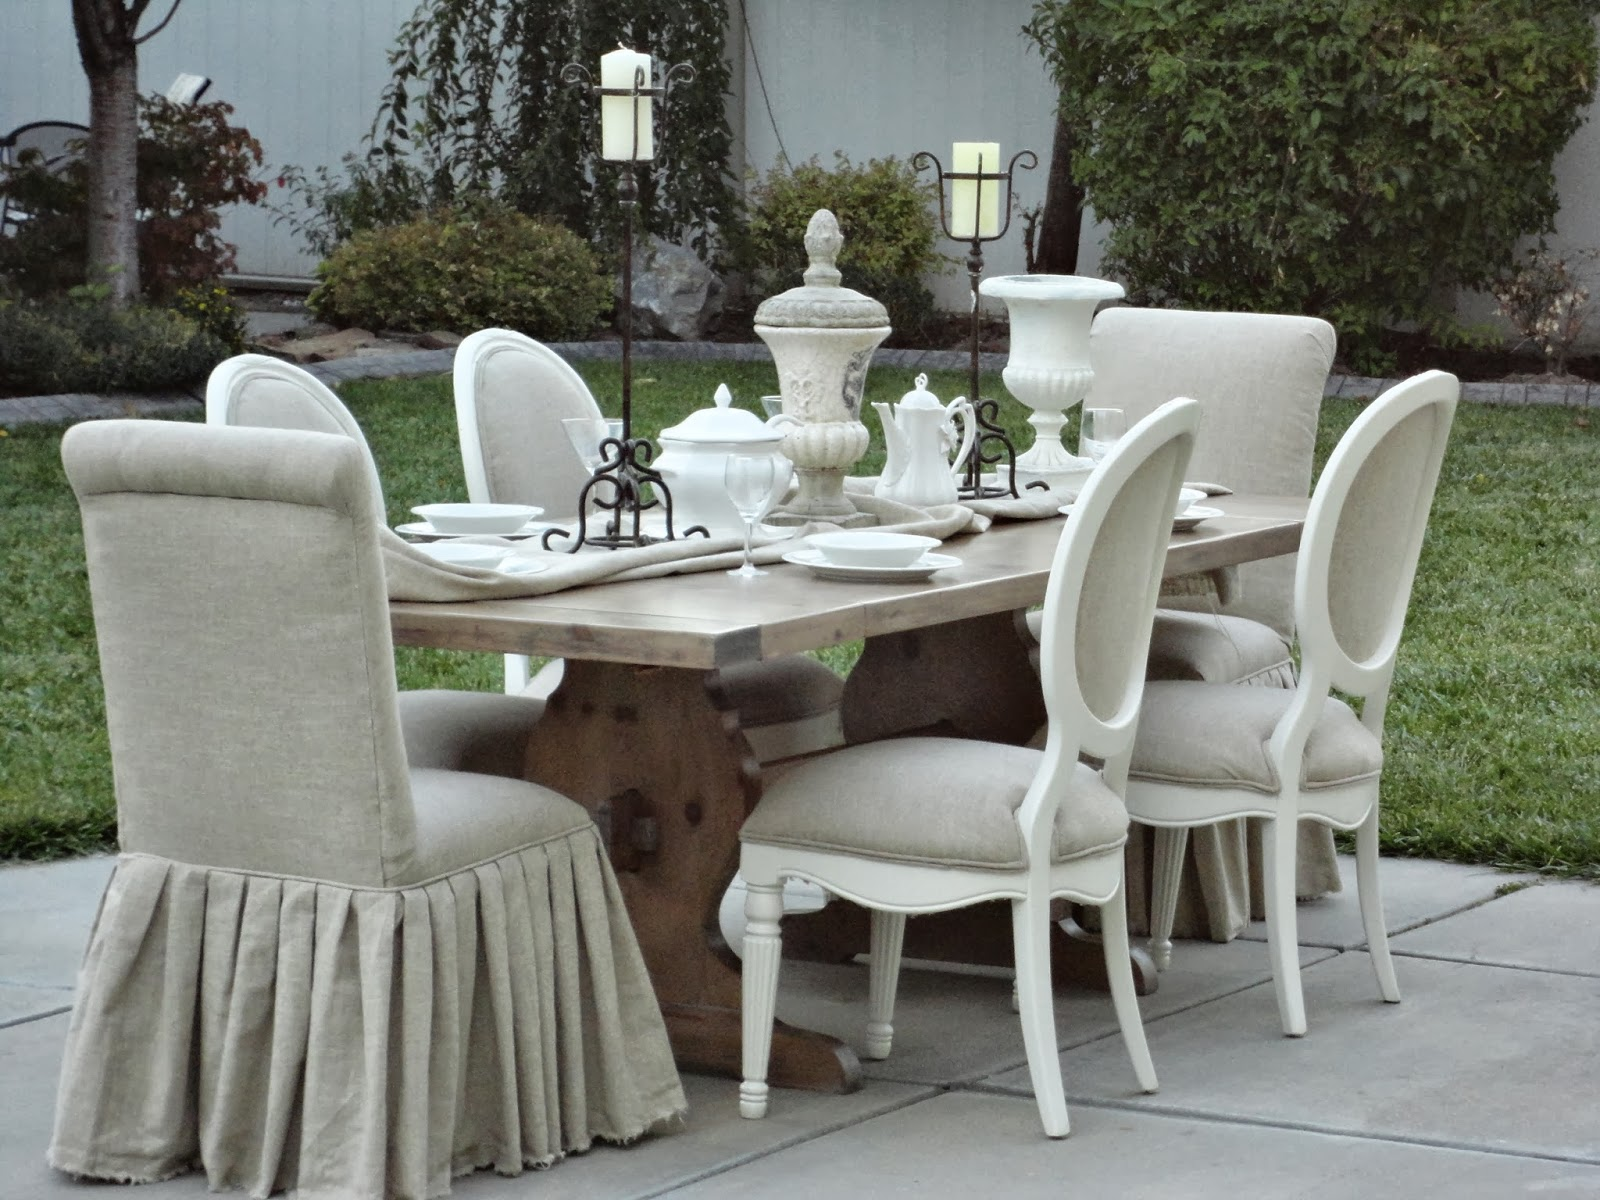 French Garden Treasures Farmhouse Dining Set 1800 SOLDSOLD THANKS TRICIA